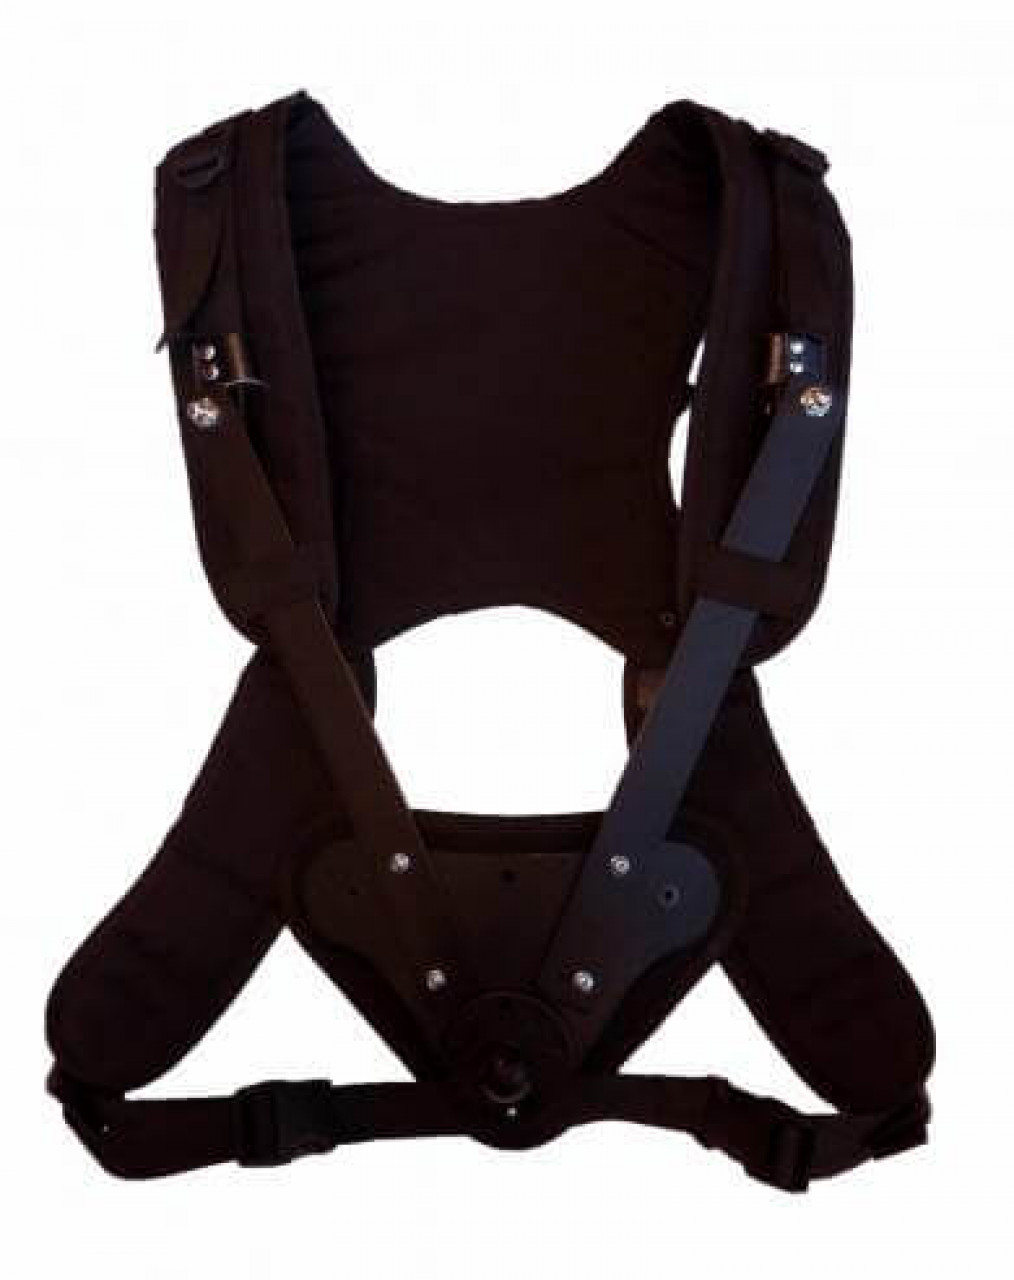 Carrying harness